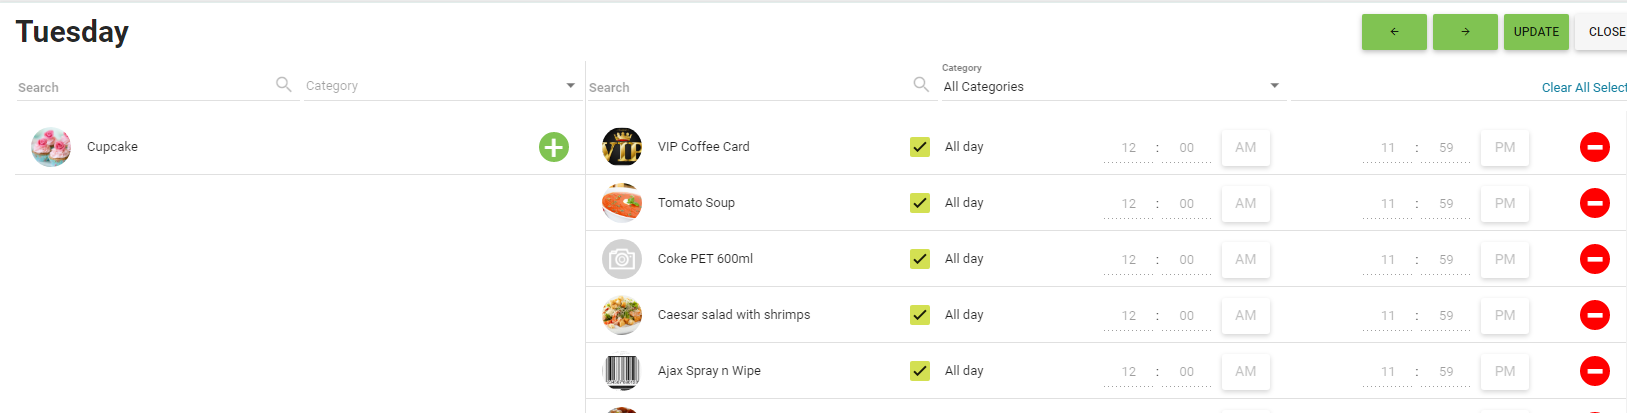 BOM - Items List - Daily Menu - Remove an Item From Sale